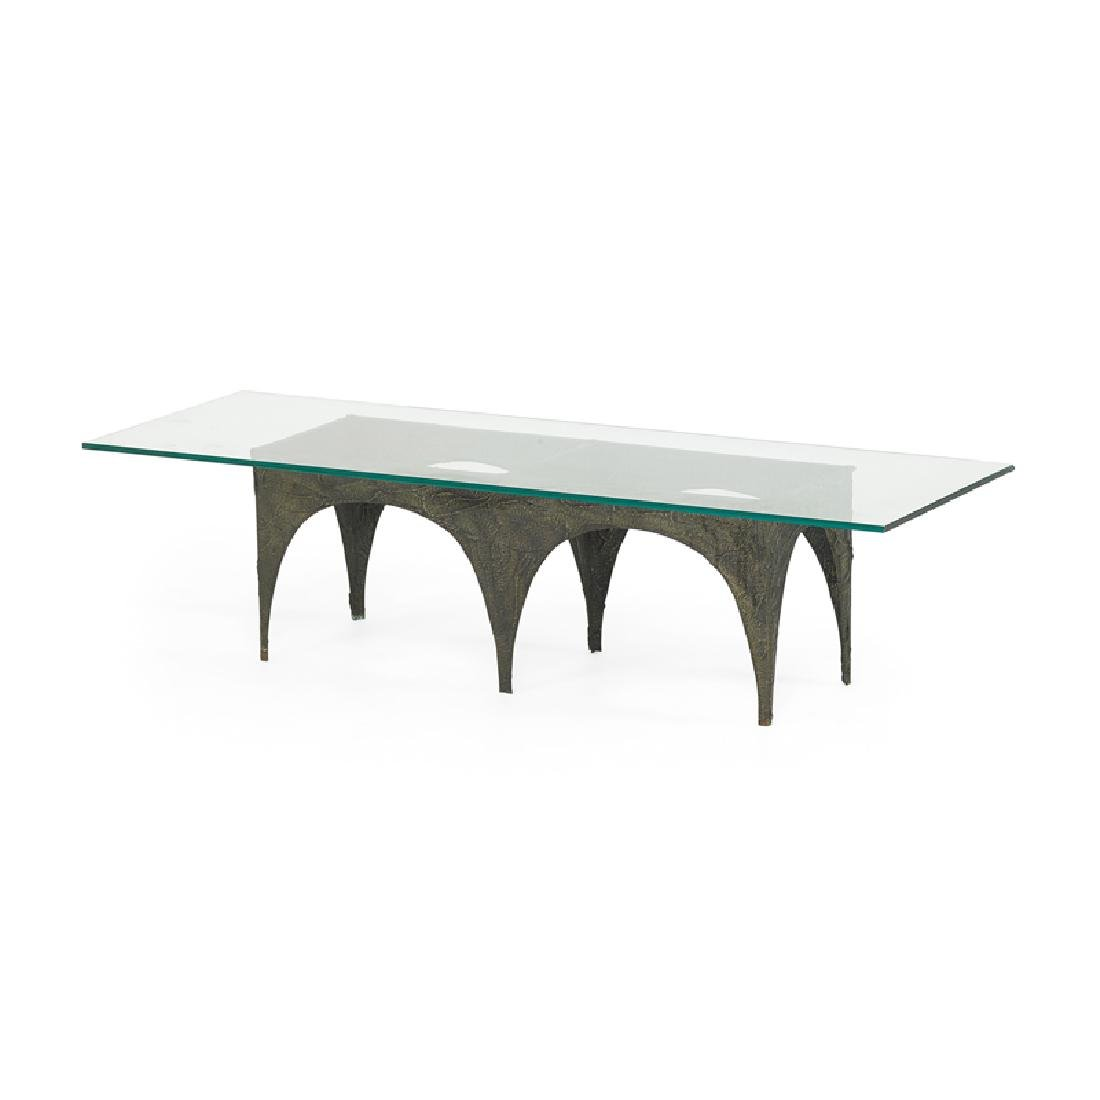 PAUL EVANS Sculptured Metal coffee table